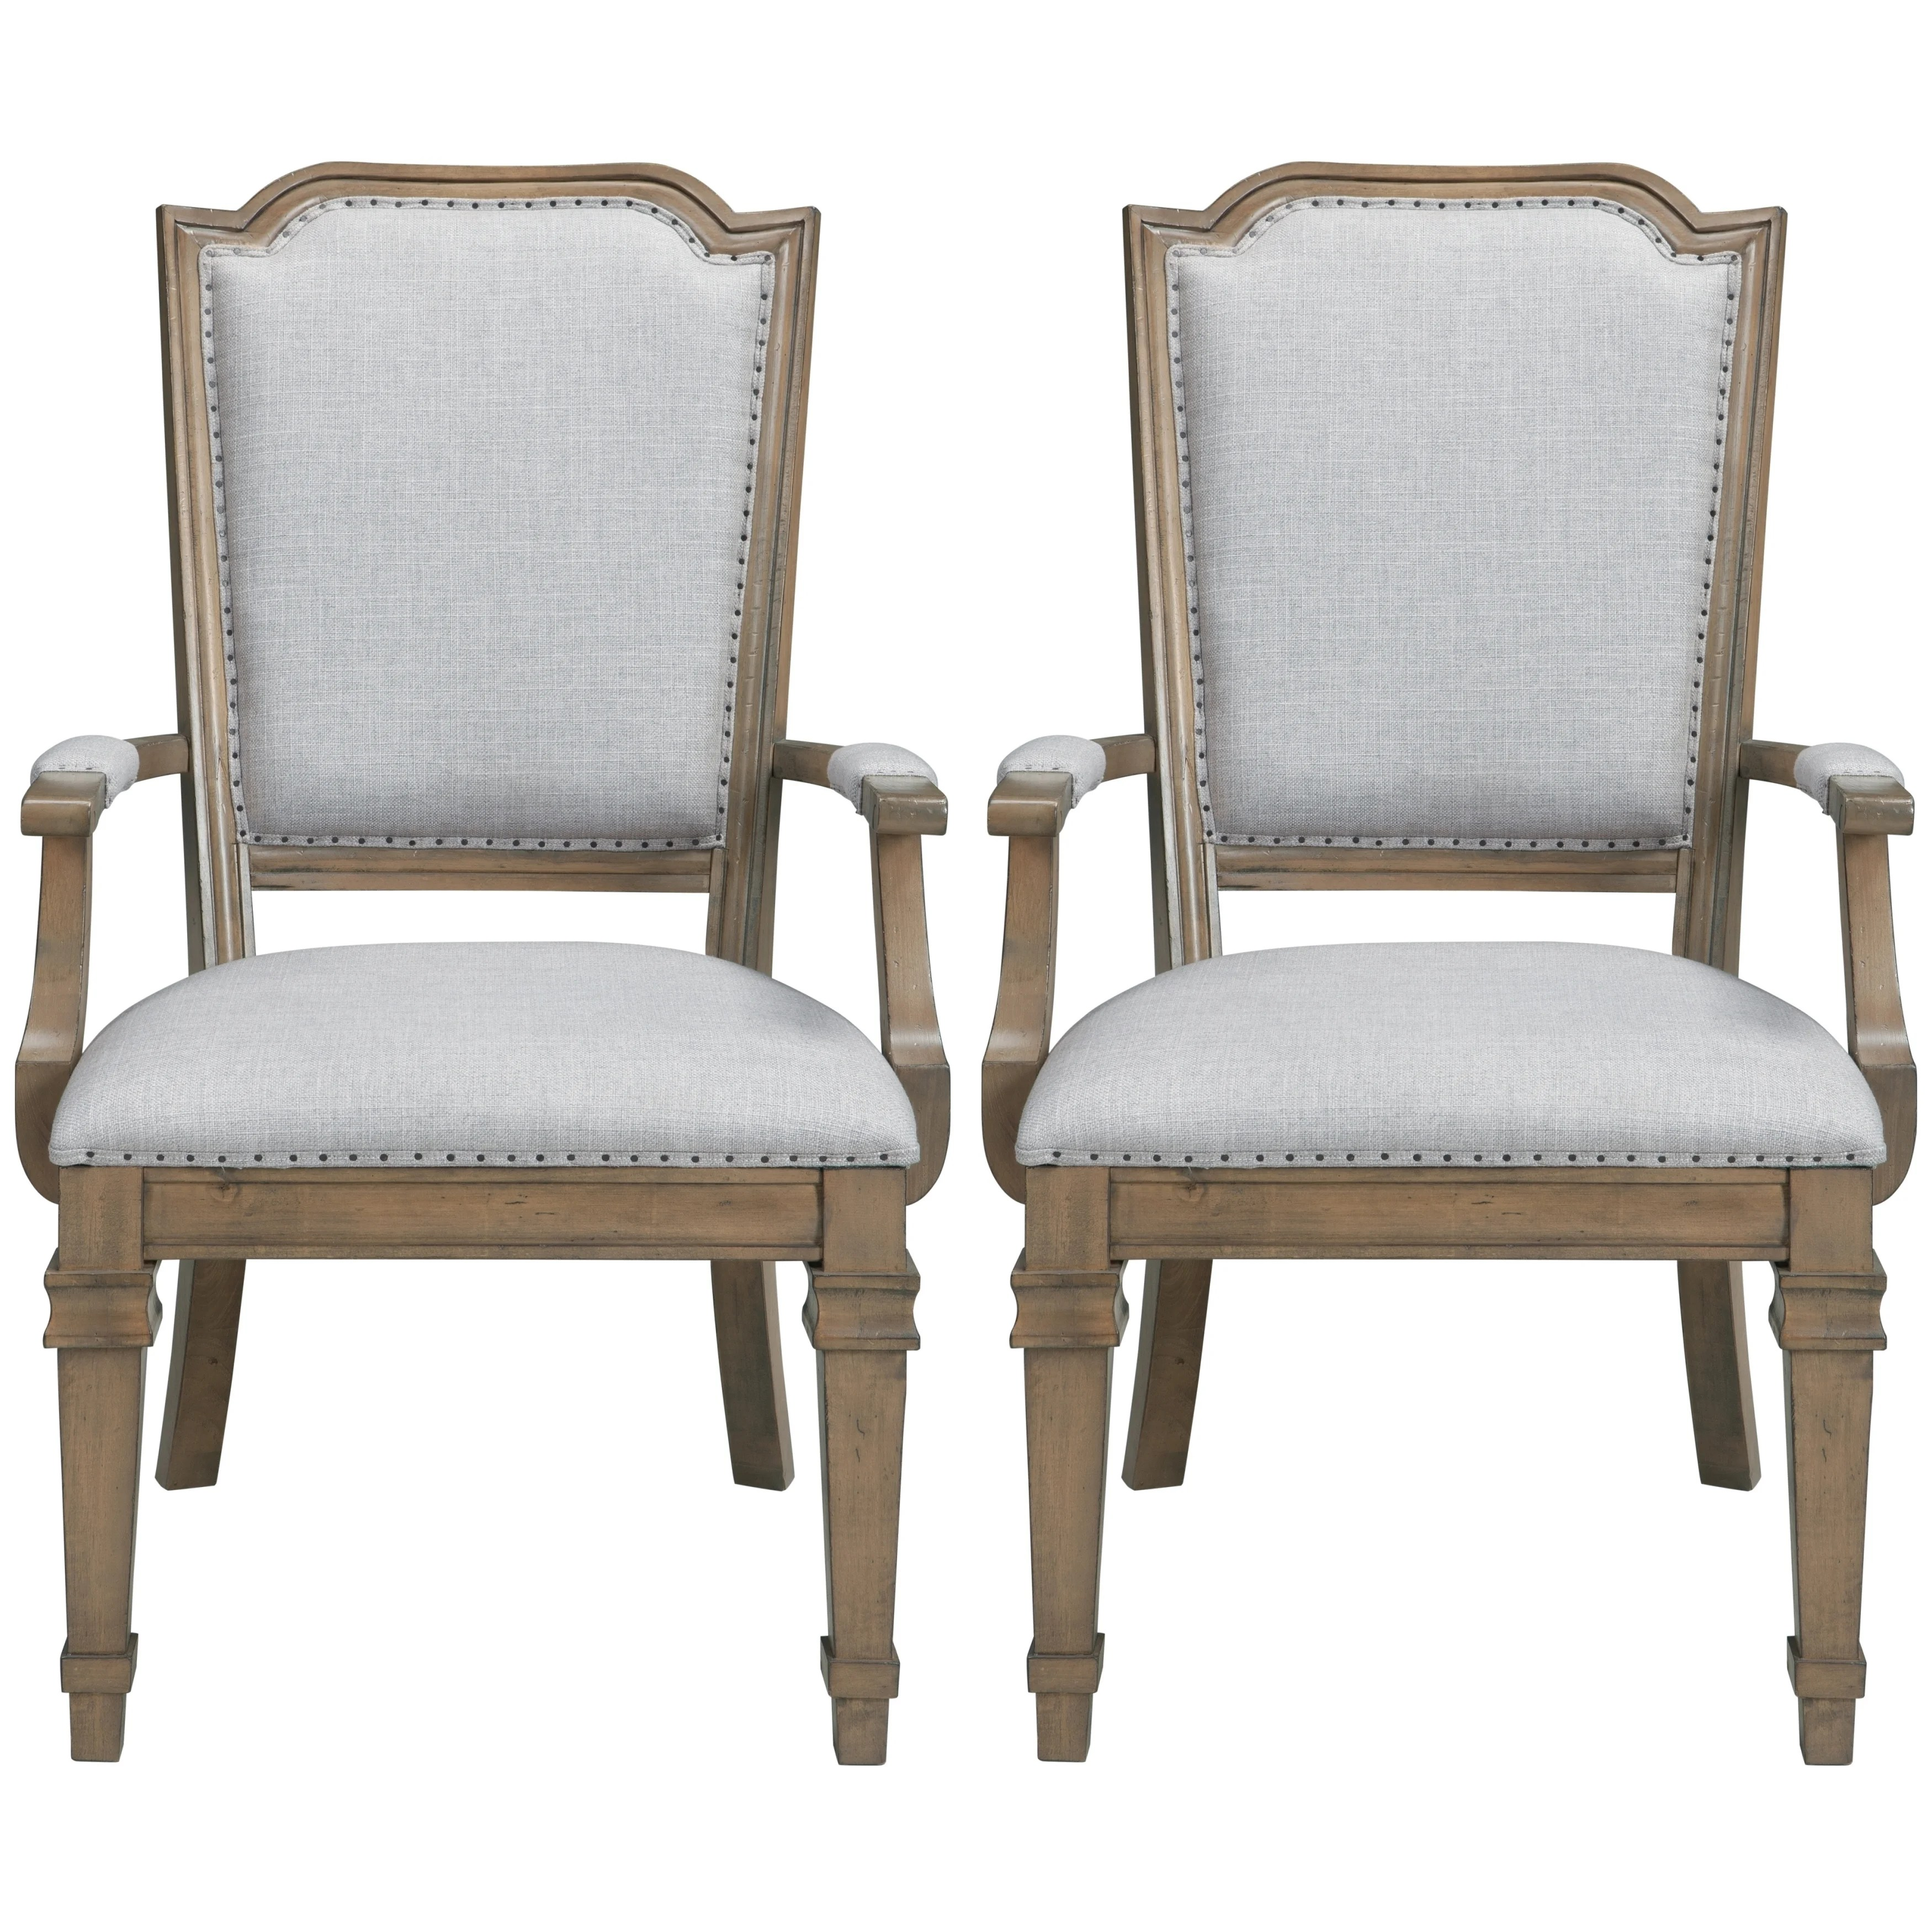 Arm Chairs Vintage 18th Century French Neoclassic Design Dining Arm Chairs Set Of 2